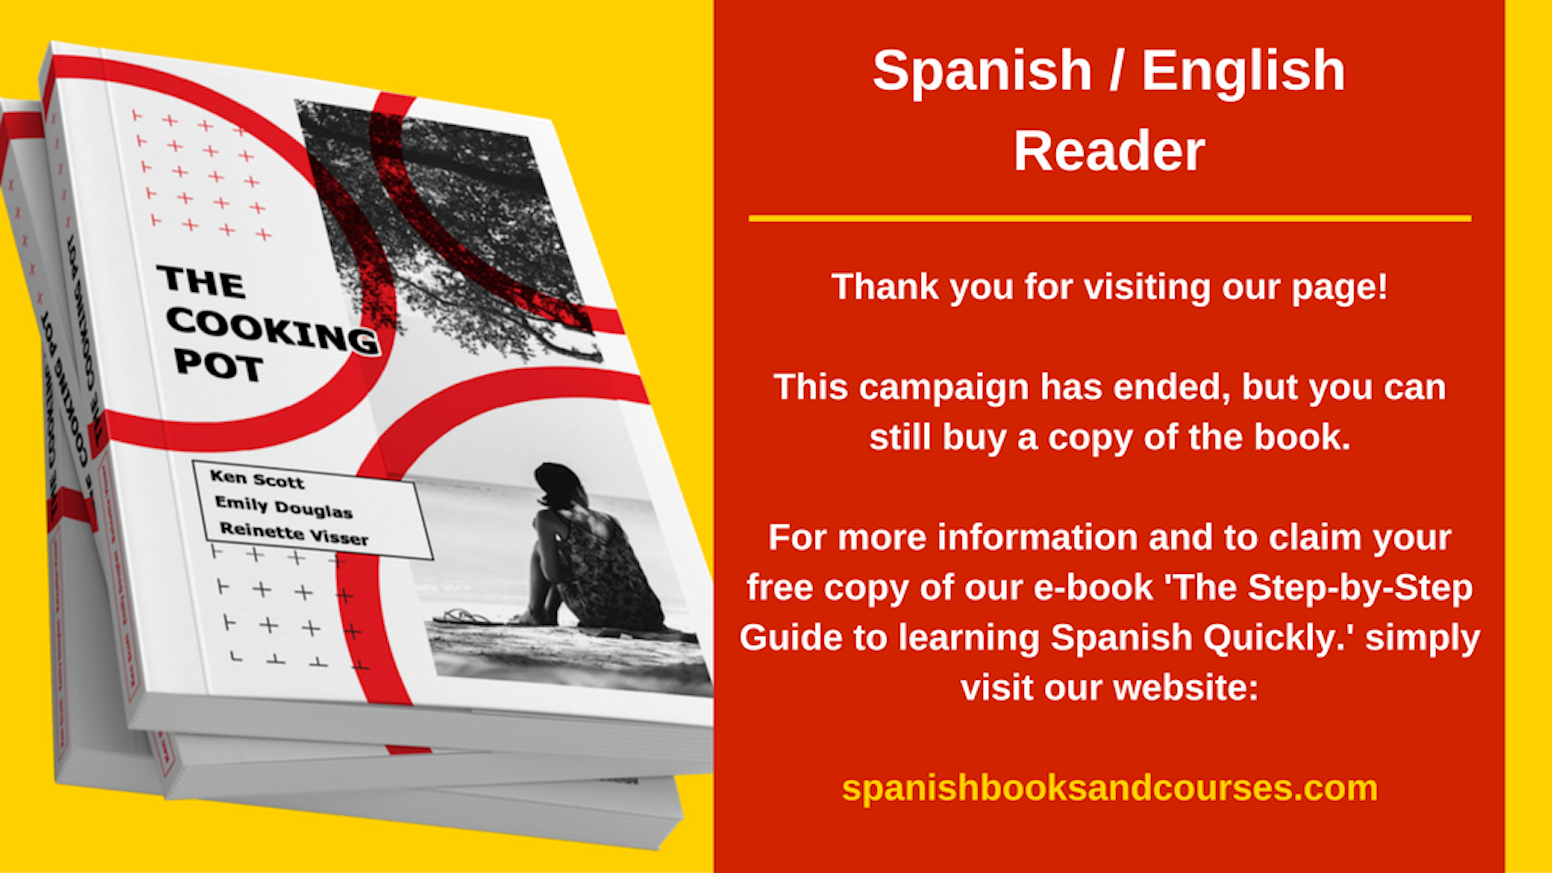 The Cooking Pot Spanish English Reader For Adults By Reinette